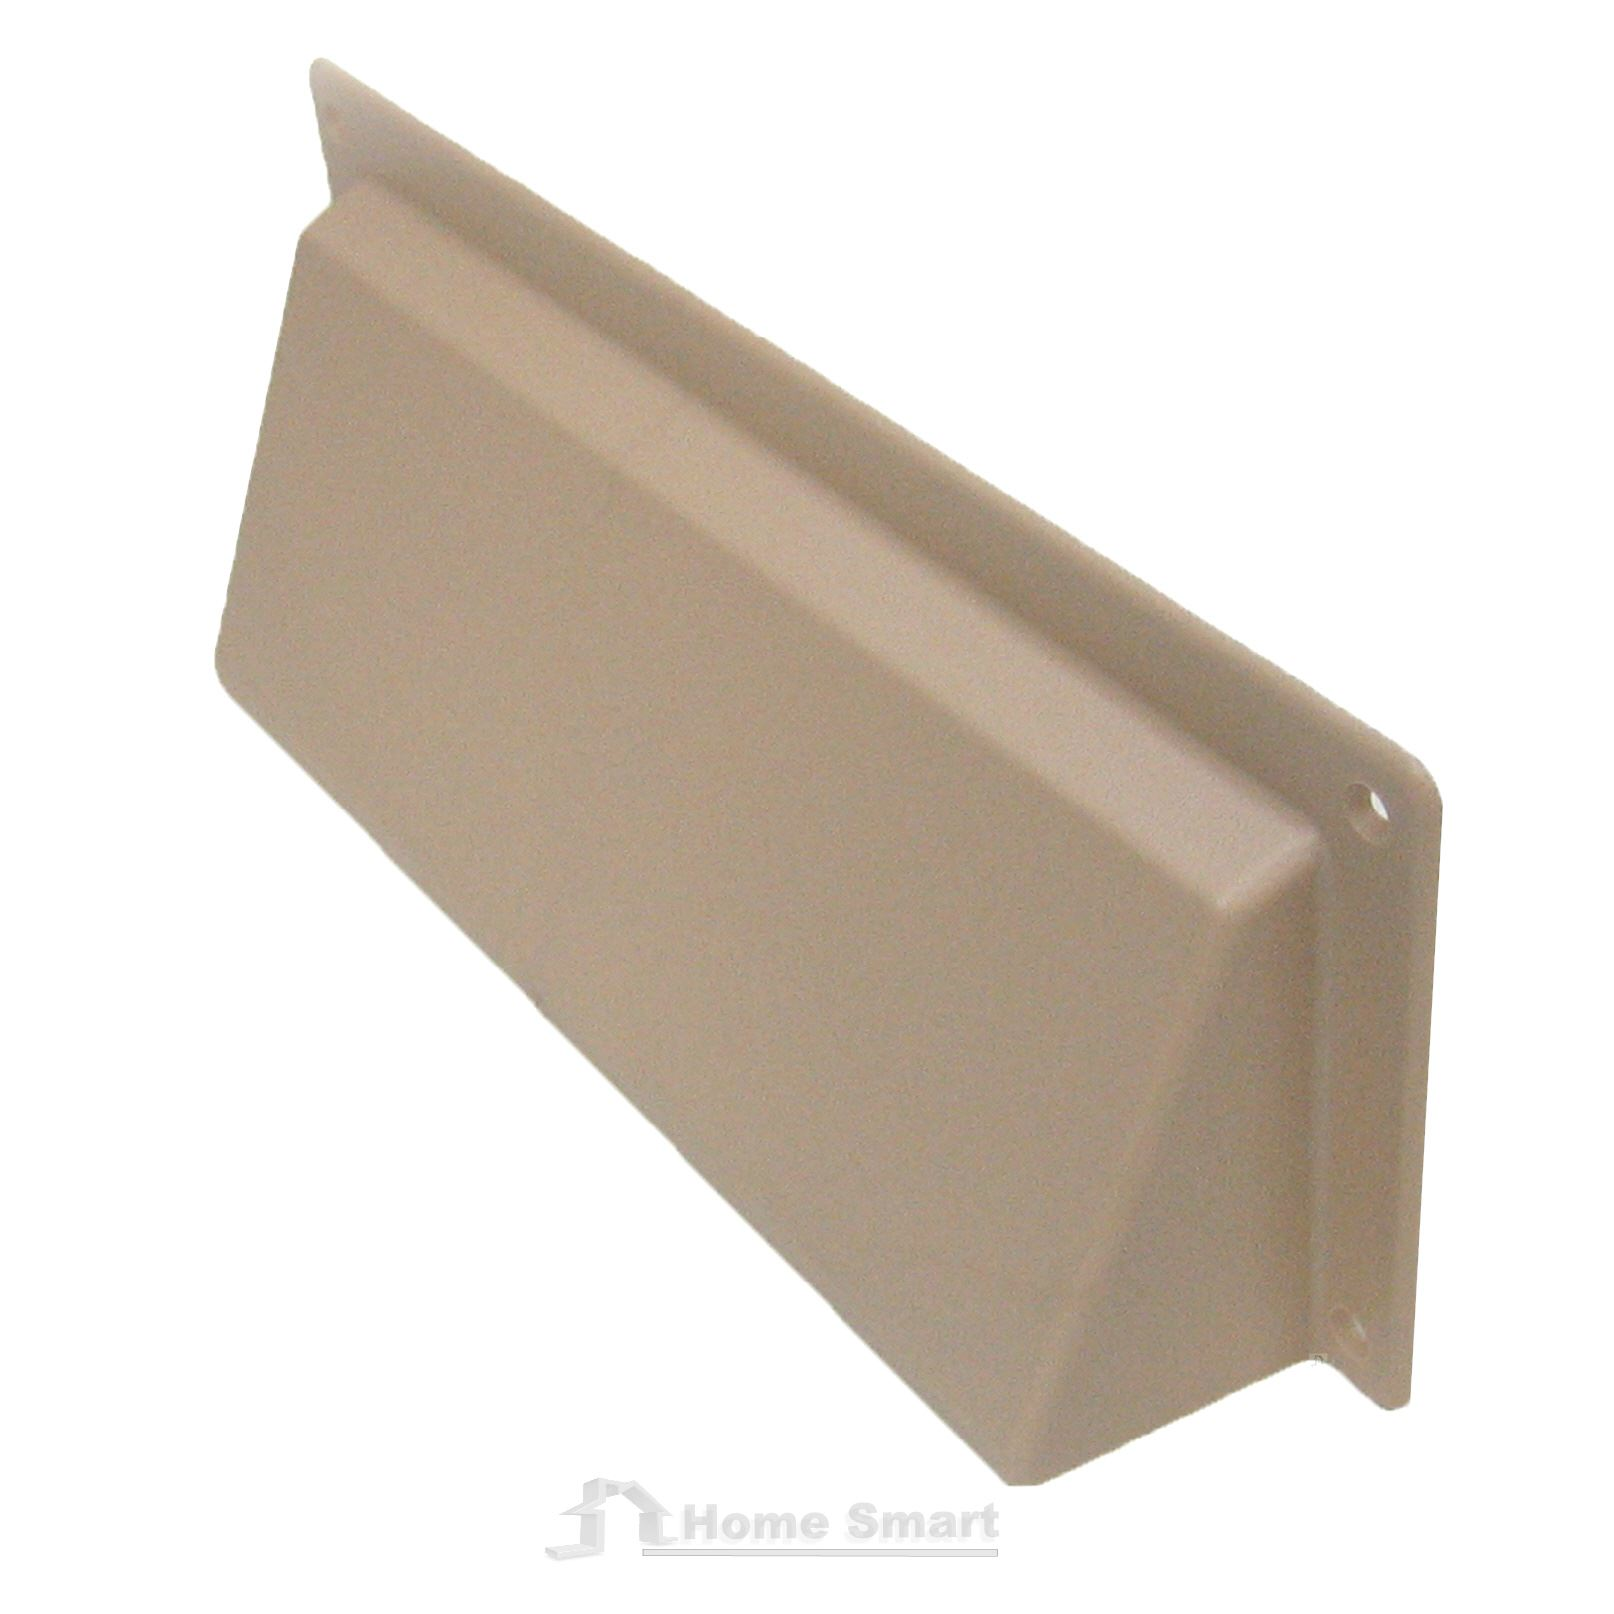 Quot cream buff hooded cowl vent cover for air bricks